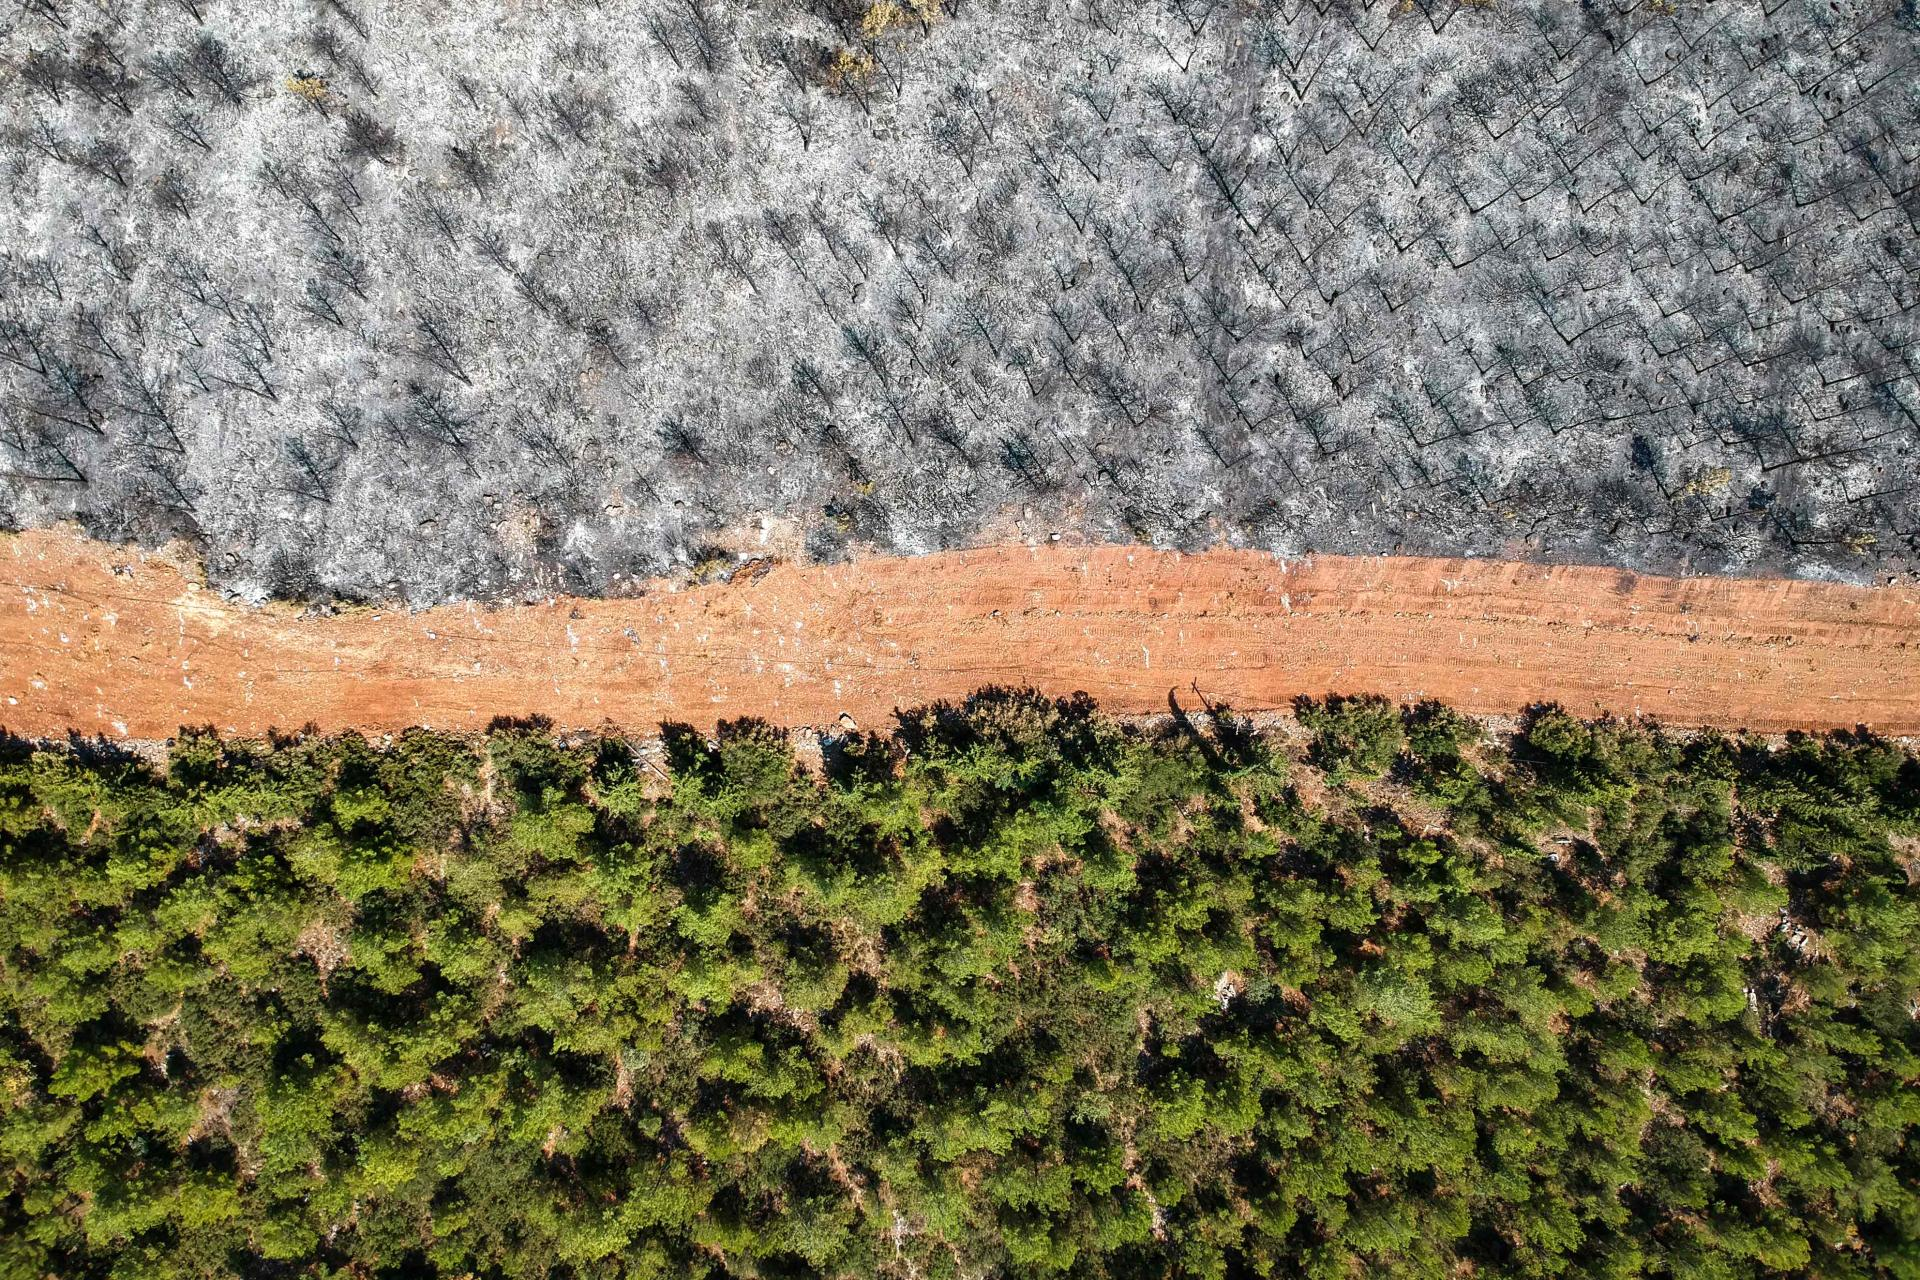 Aerial view taken in Mugla region, Turkey on August 7, 2021. This forest path was like a fire.